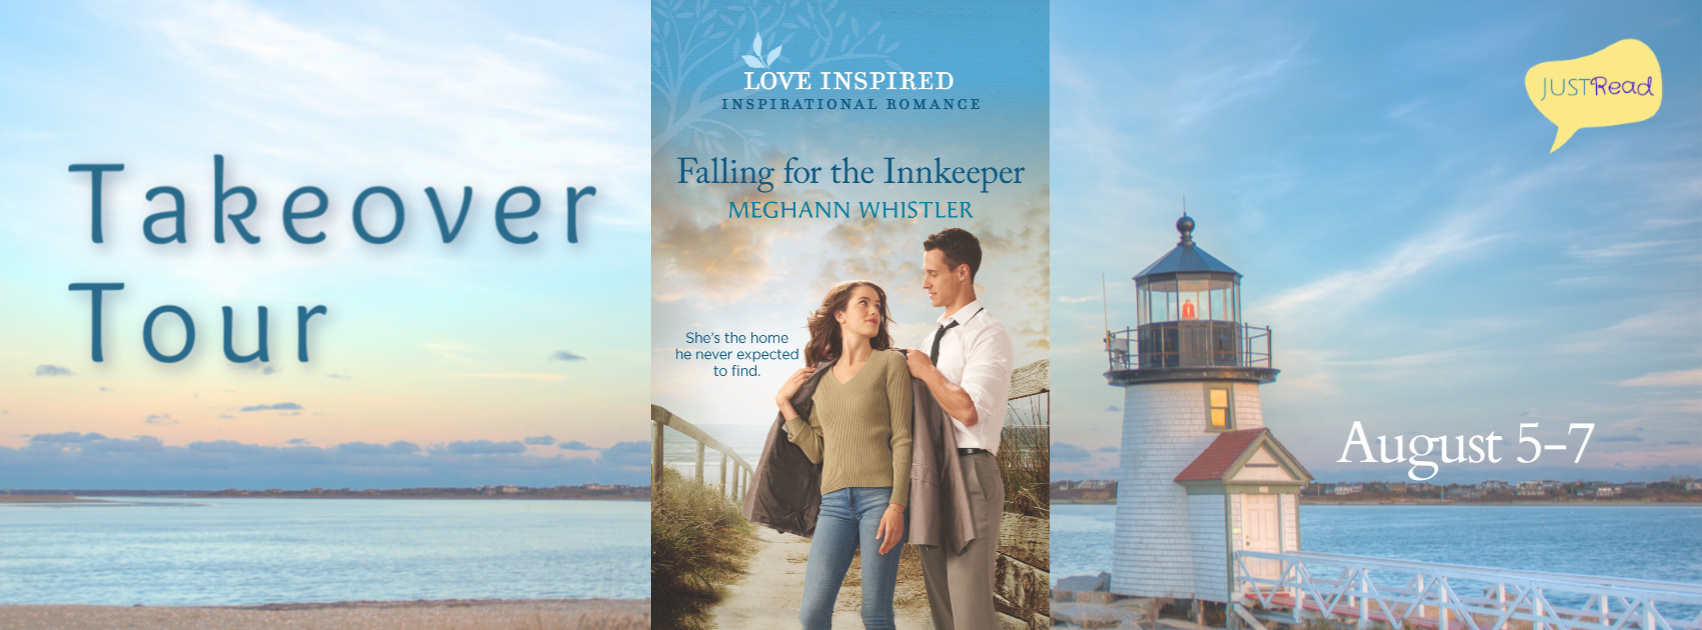 Welcome to the Falling for the Innkeeper Takeover Tour & Giveaway!